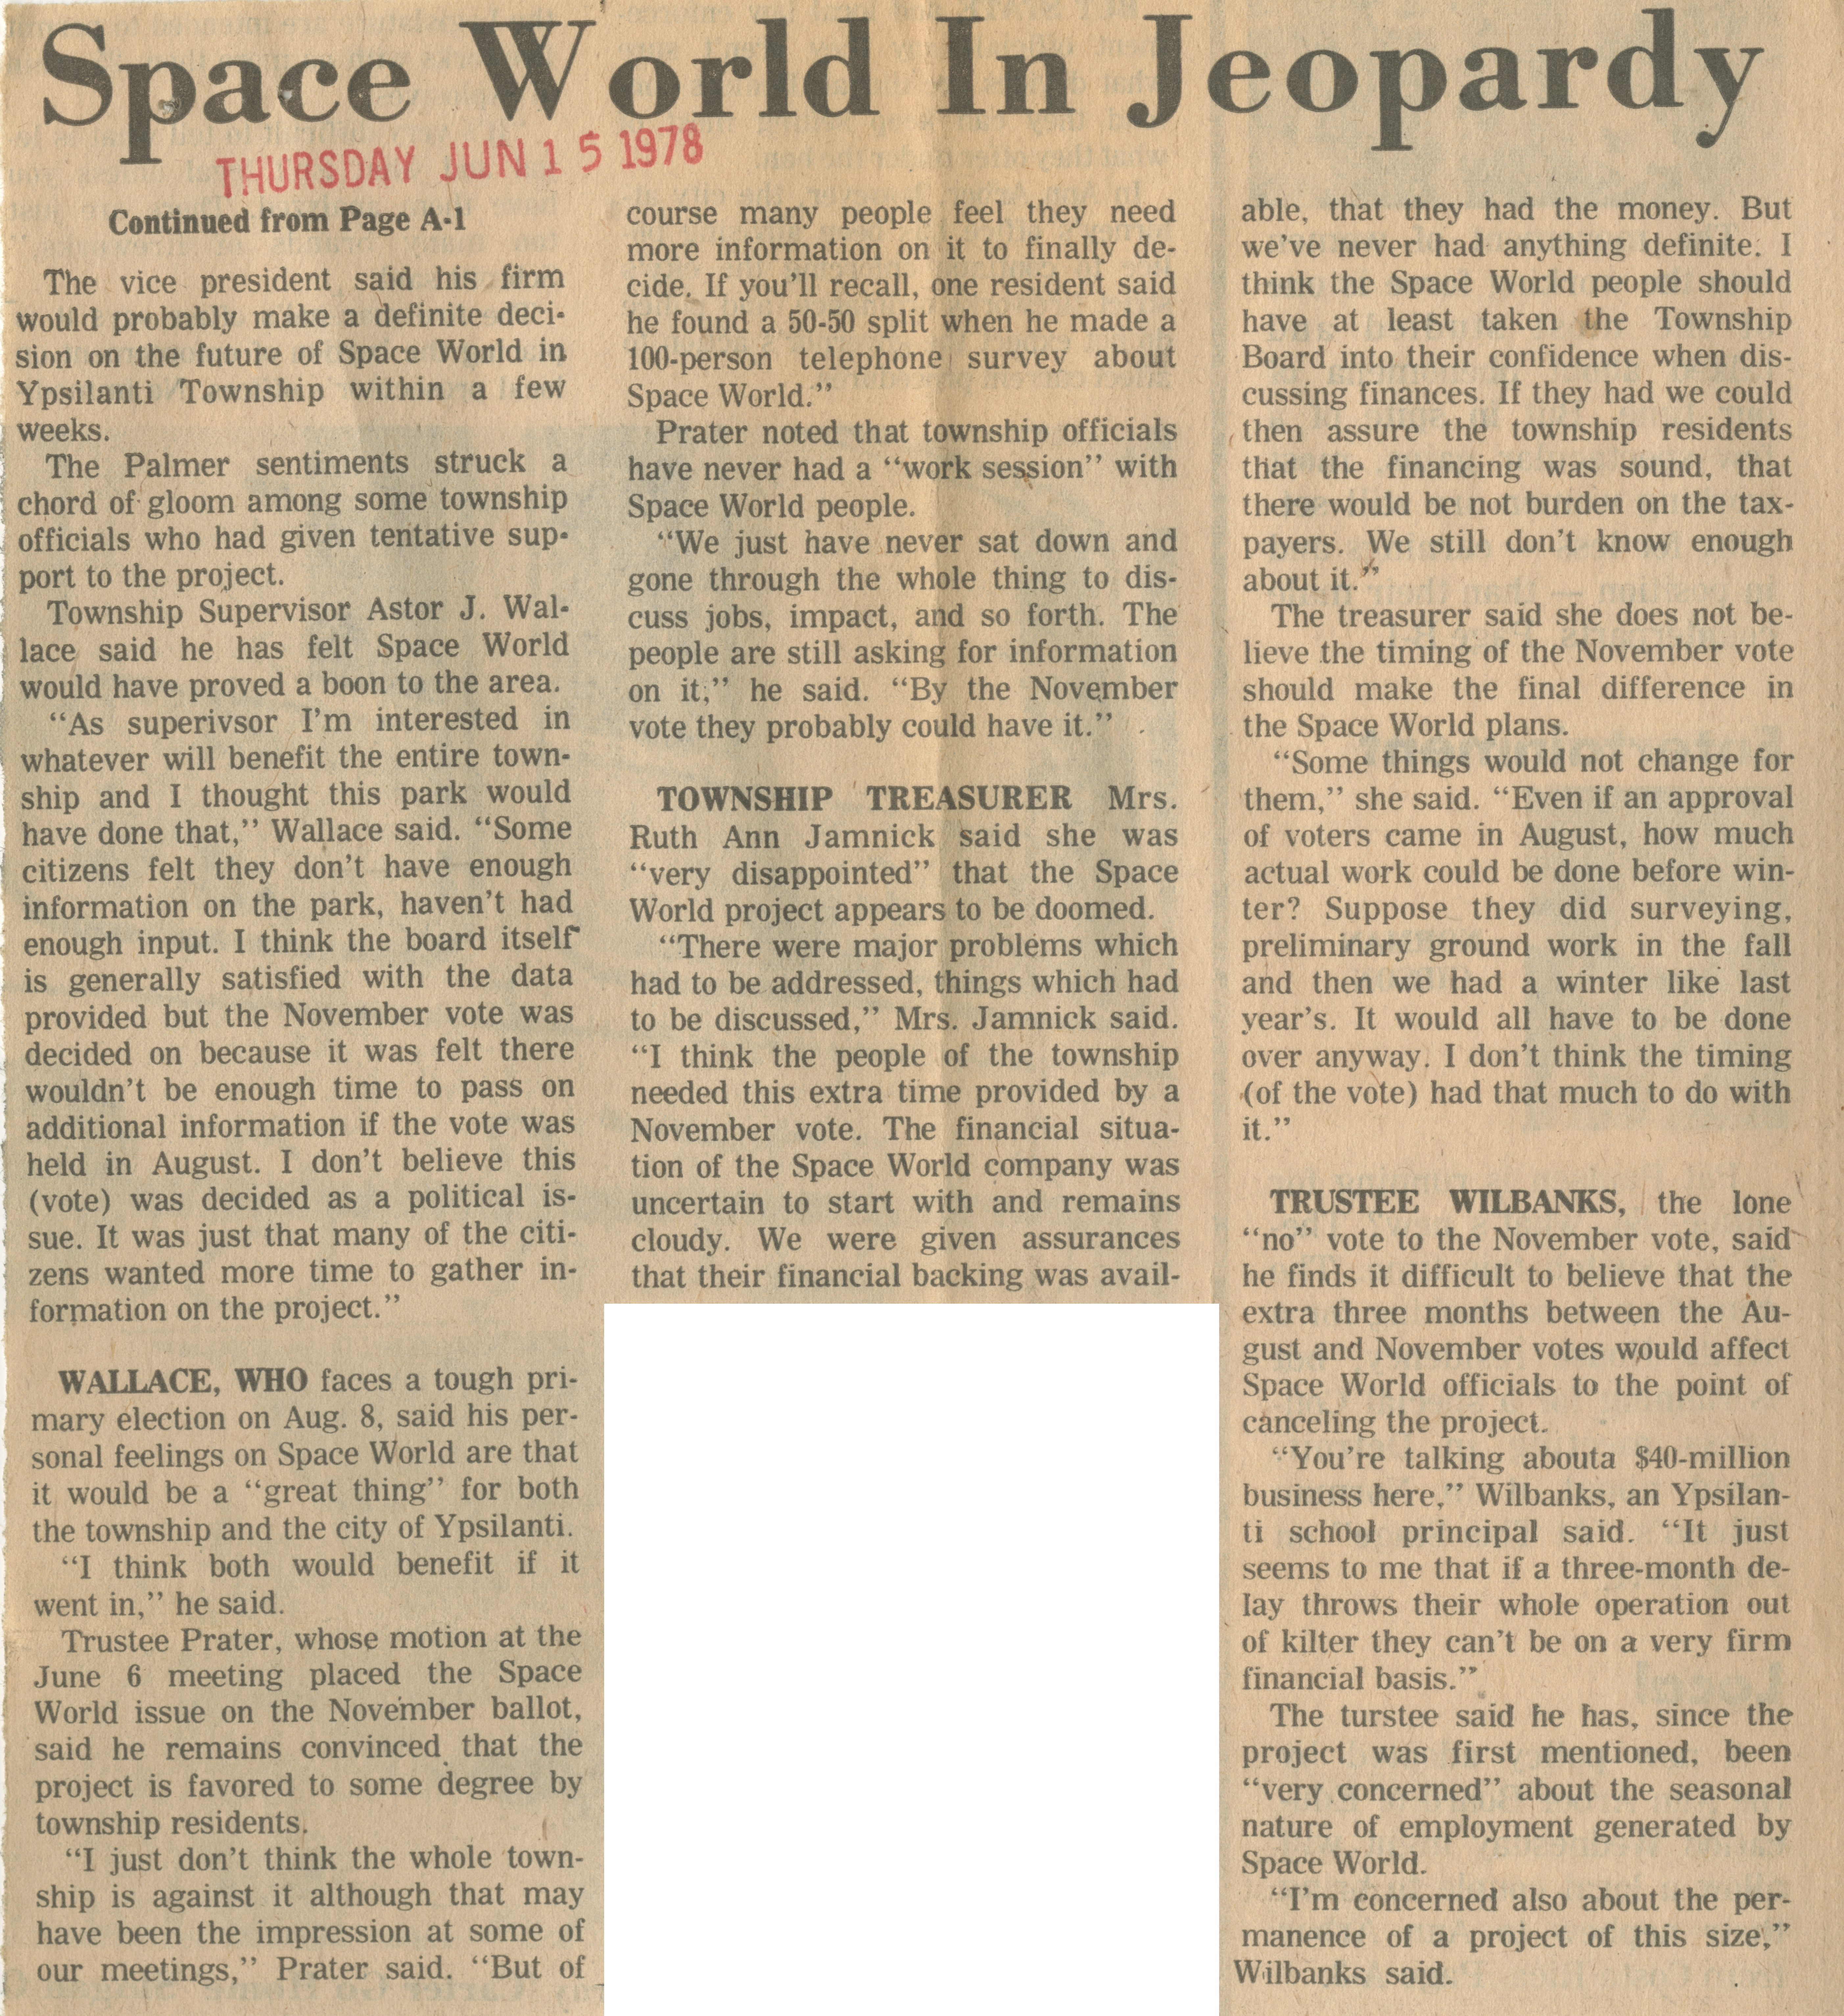 Space World May Quit Township image